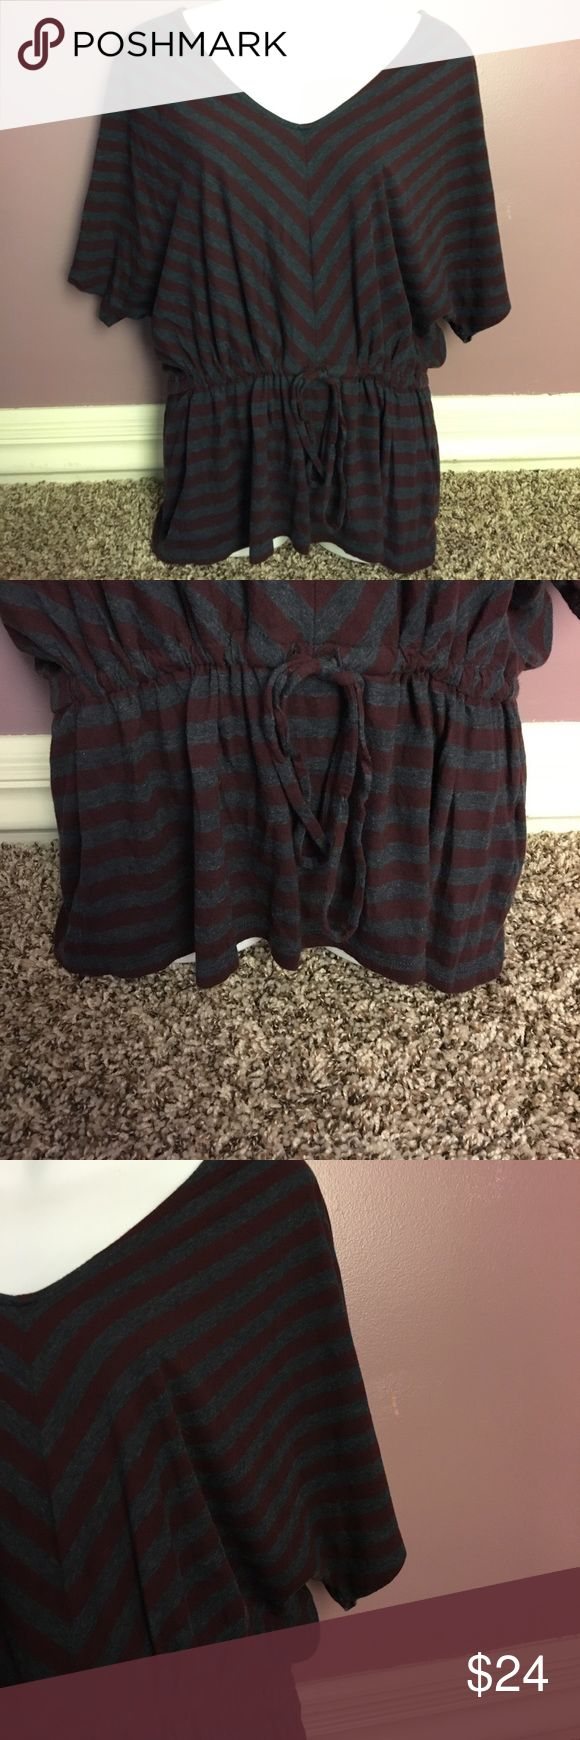 Banana Republic Maroon and Grey Stripped Blouse Batwing Blouse that ties at the waist. Very sliming. Size medium. From Banana Republic. In good condition. Banana Republic Tops Blouses